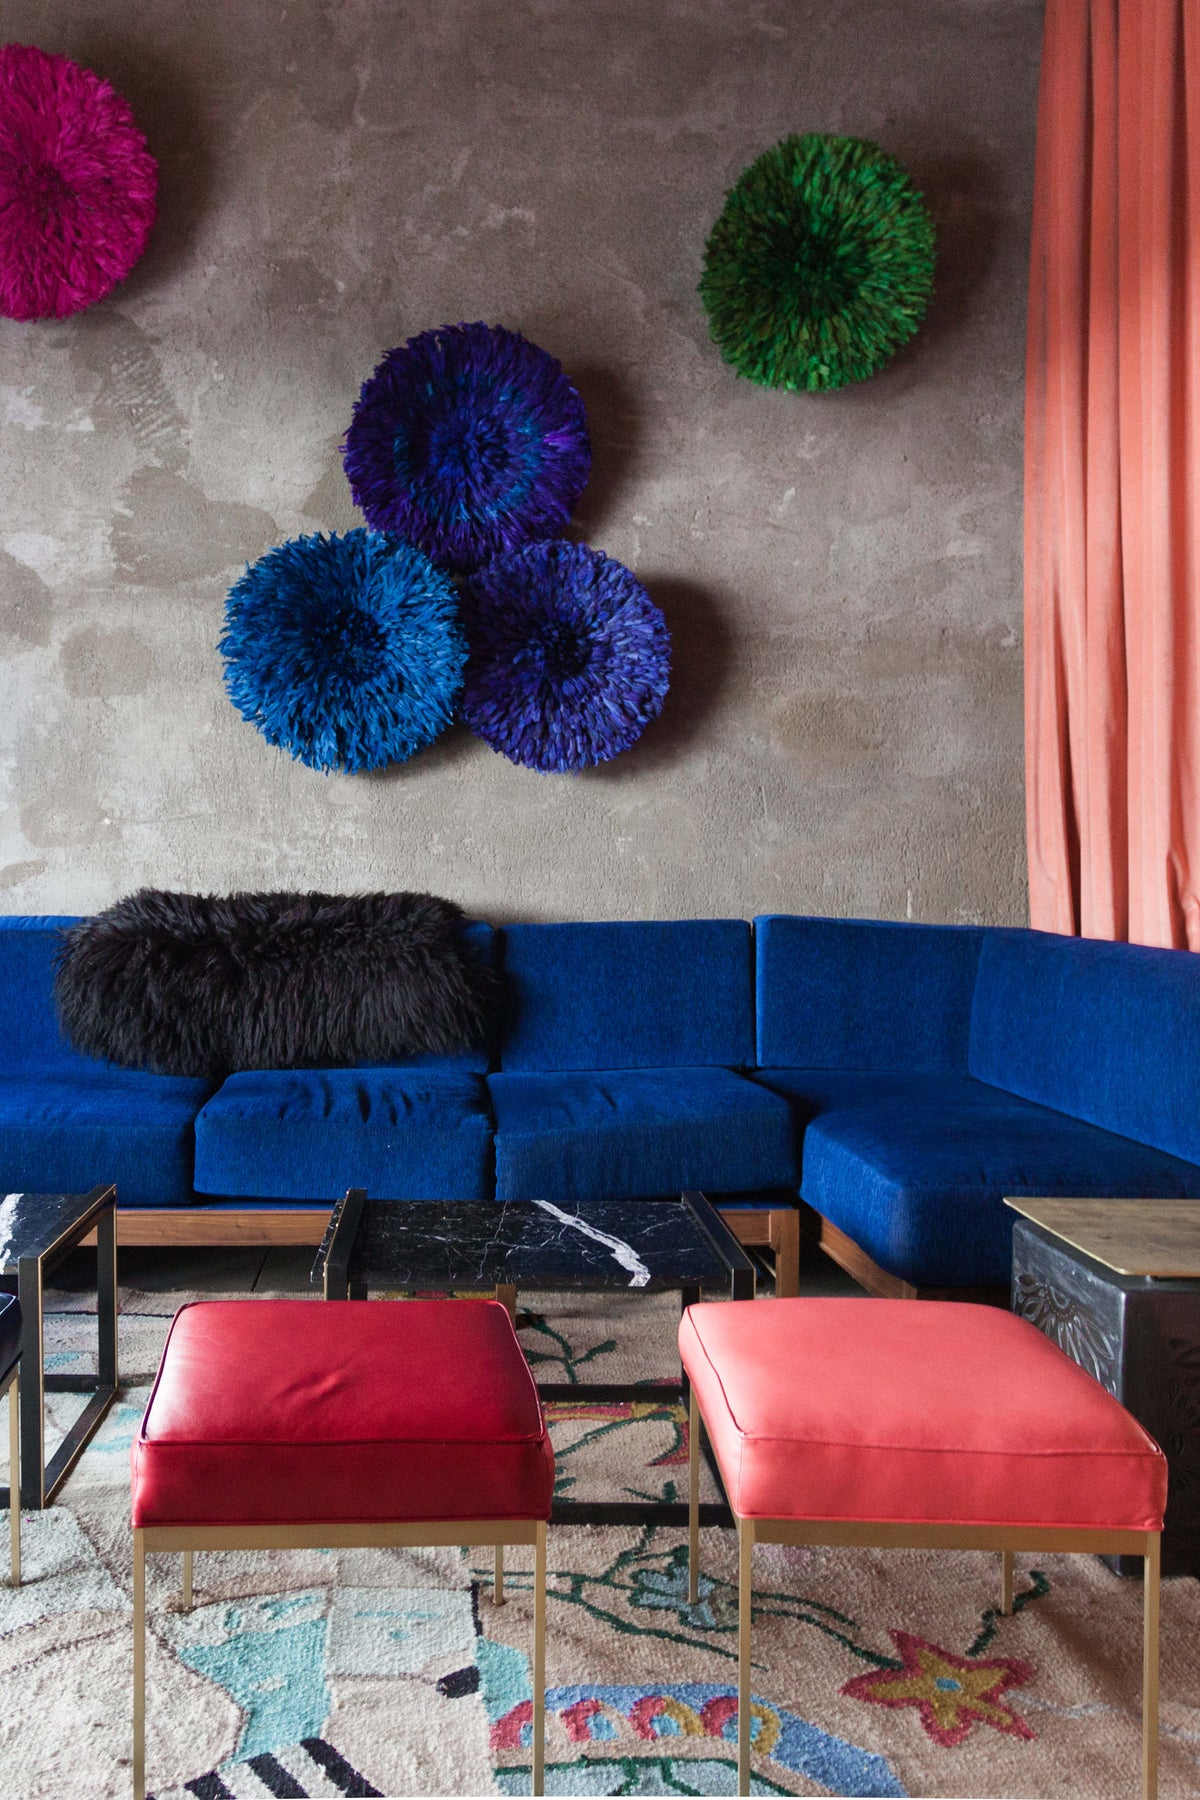 Thunderbird Hotel, Marfa - hotel lounge with vibrant decor in industrial chic setting